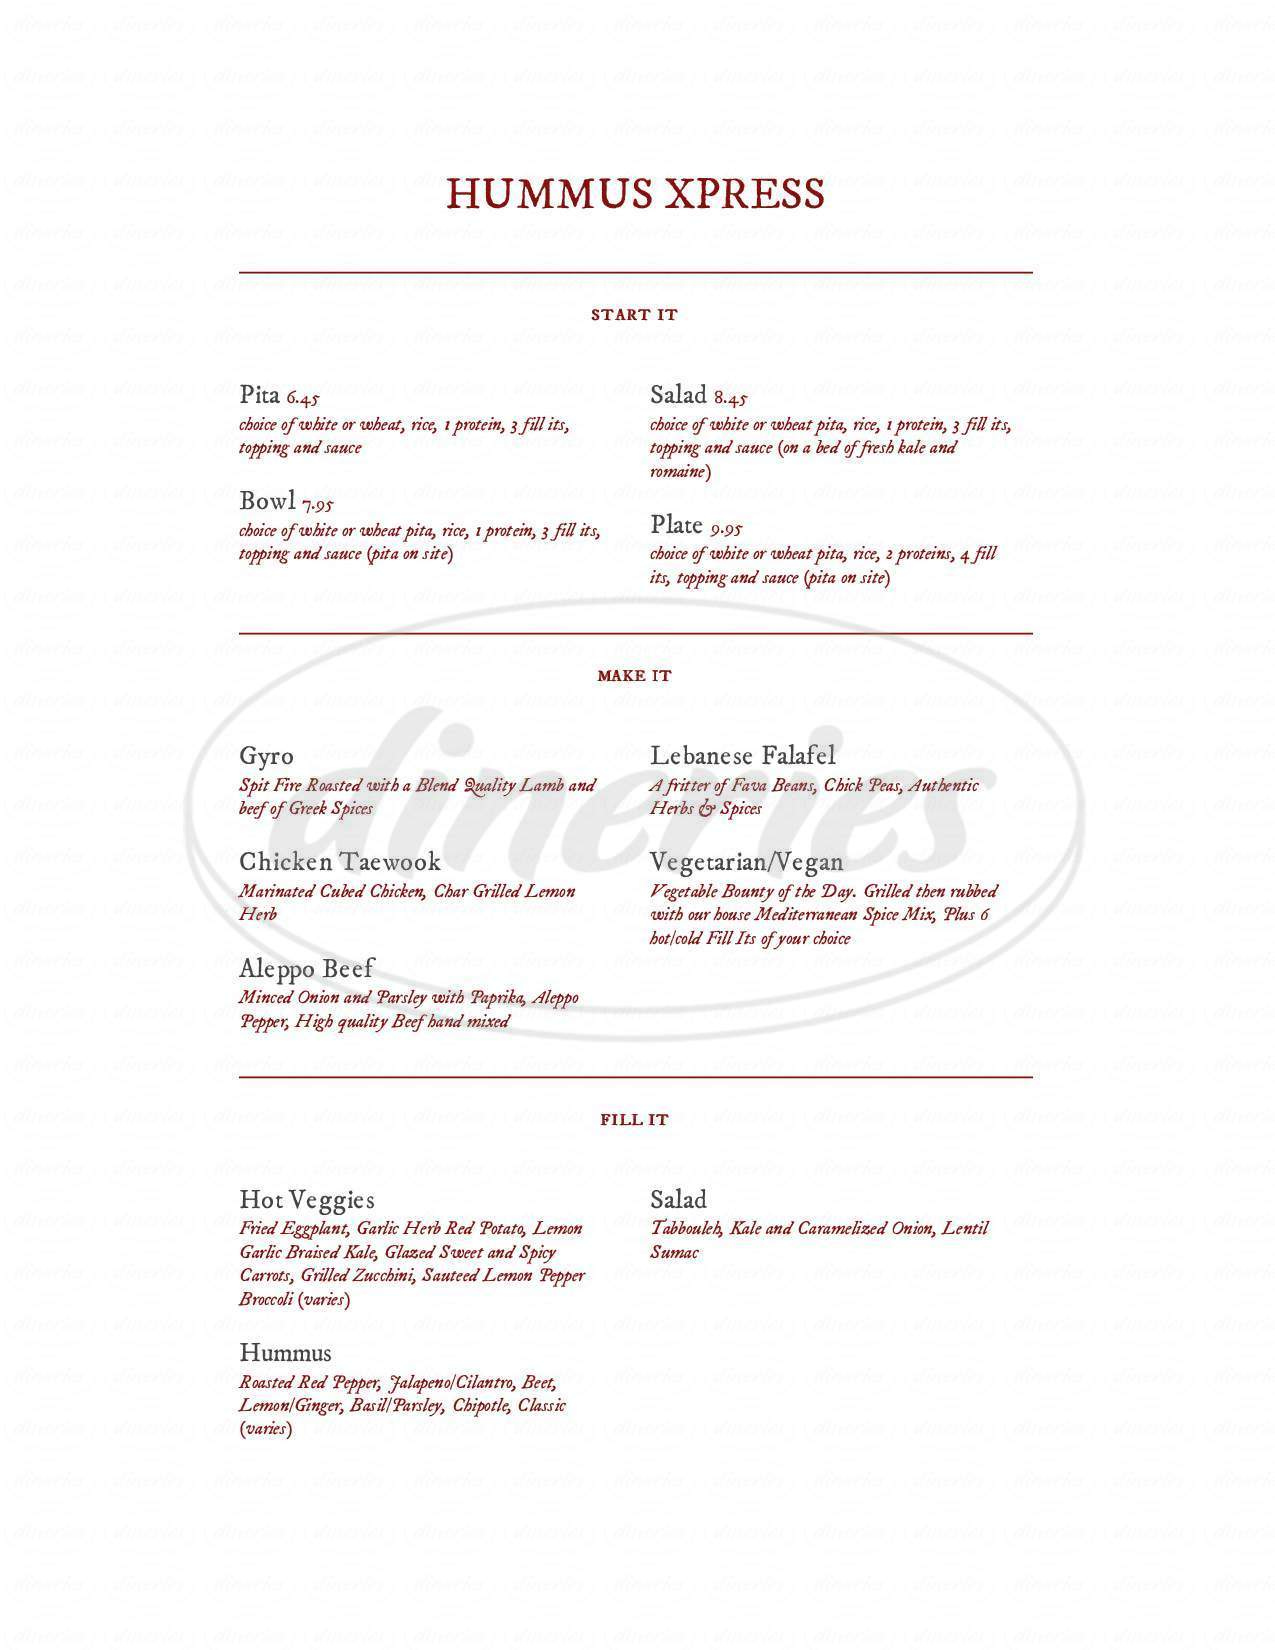 menu for Hummus Xpress